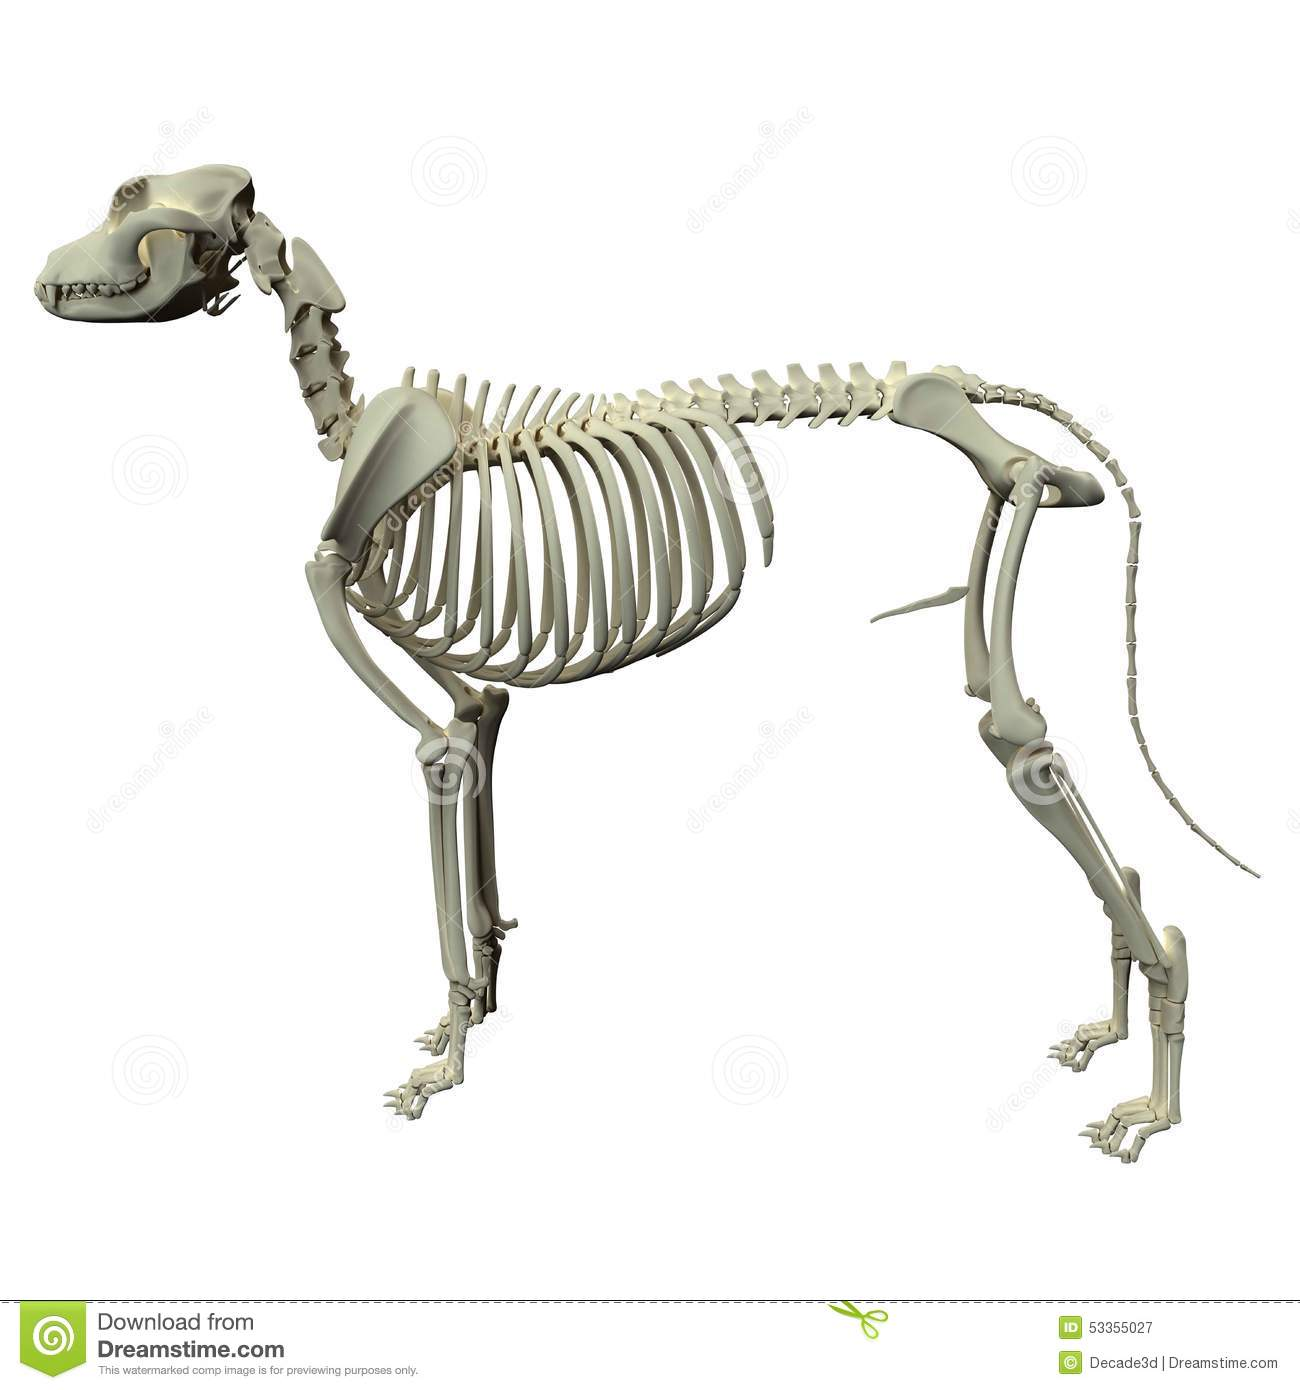 Dog Skeleton Anatomy - Anatomy Of A Male Dog Skeleton Stock Image ...